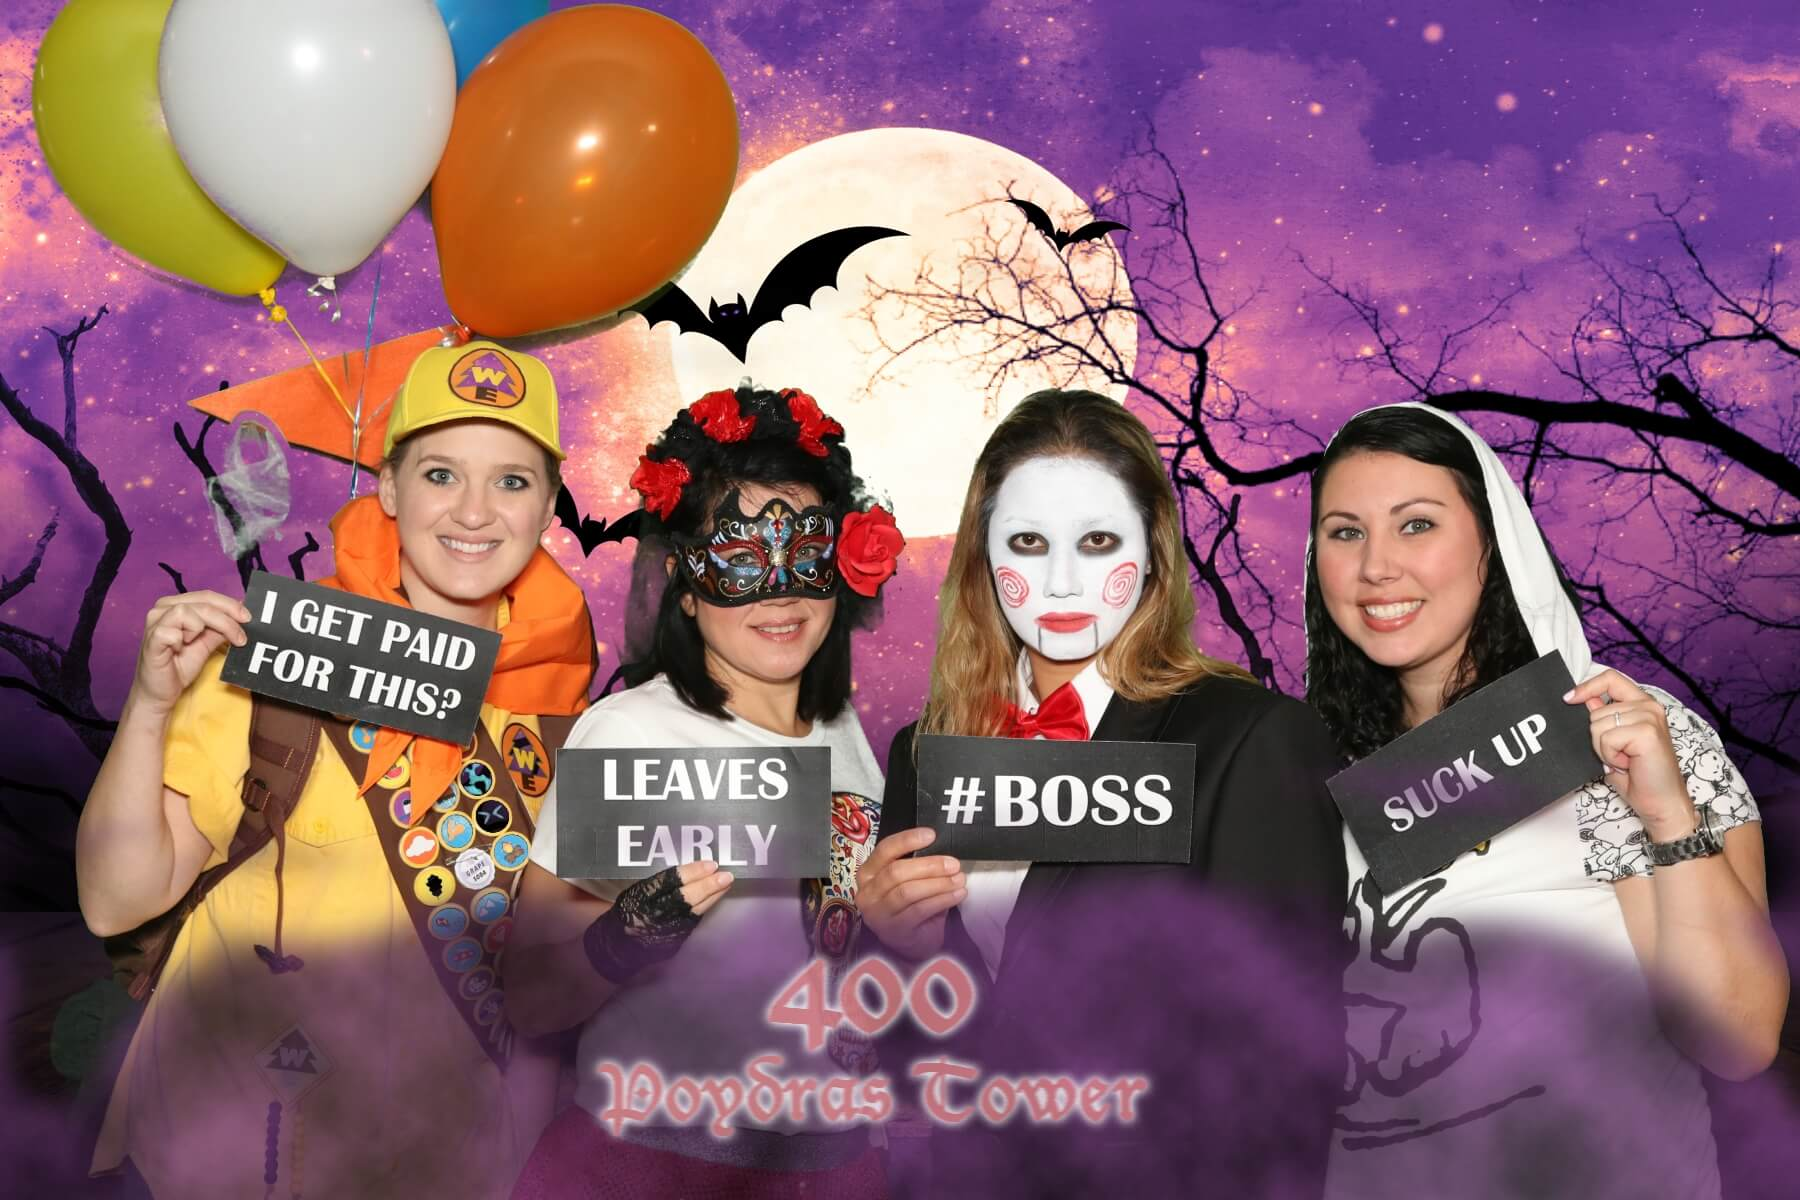 Four young women holding silly signs for a halloween inspired event photo booth rental